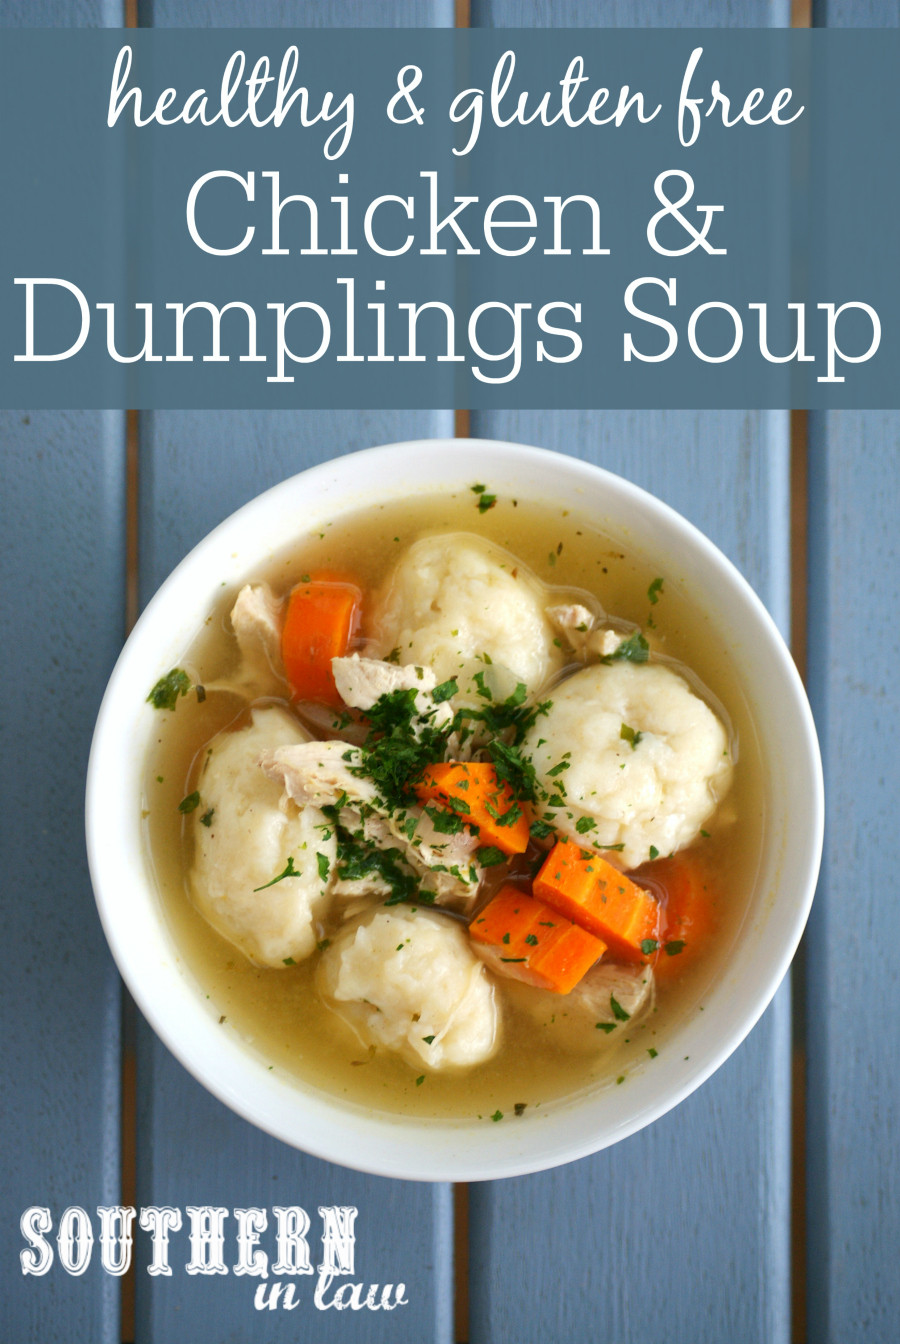 Chicken Soup Healthy  Southern In Law Recipe Healthy Chicken and Dumpling Soup